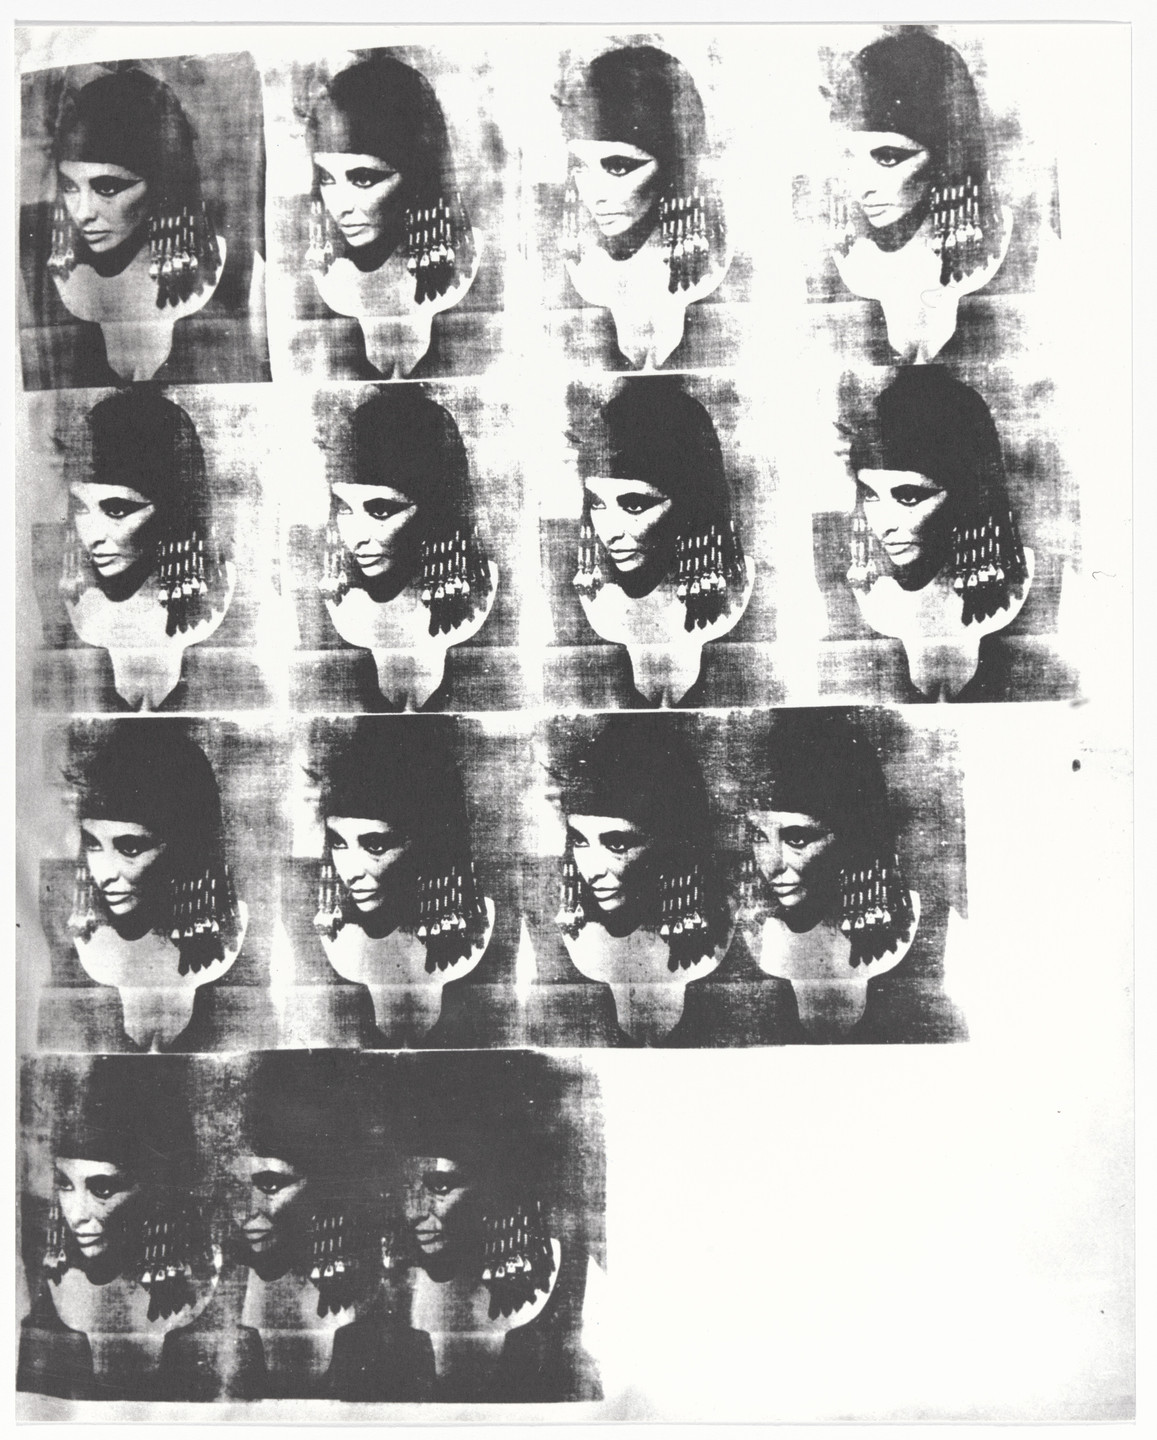 Andy Warhol. Portraits from Artists & Photographs. 1970